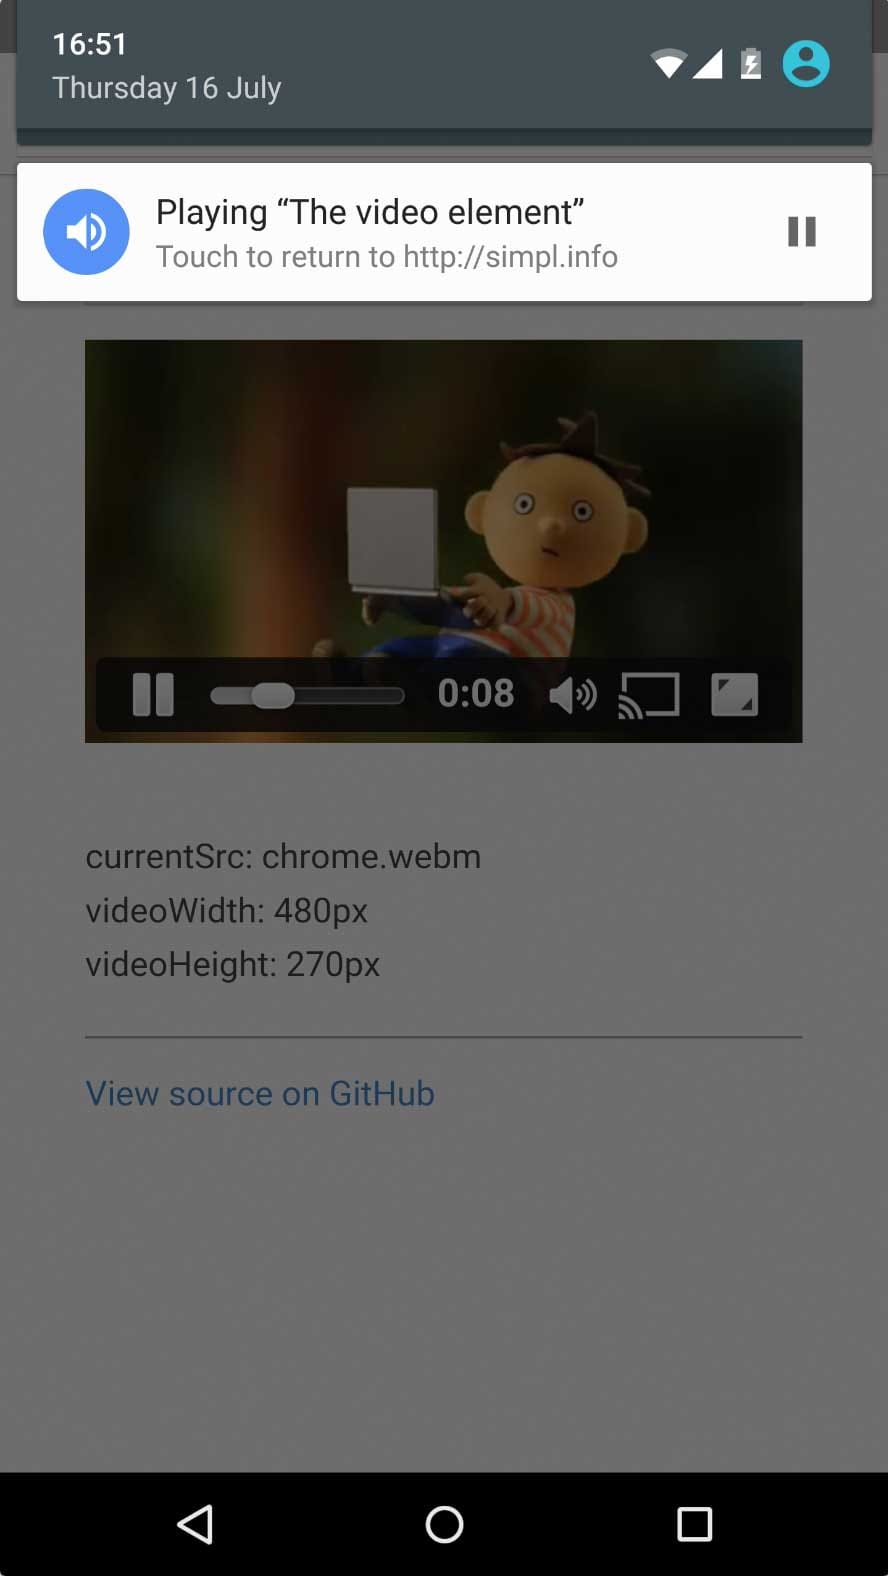 Media playback notifications for Chrome on Android | Web | Google ...